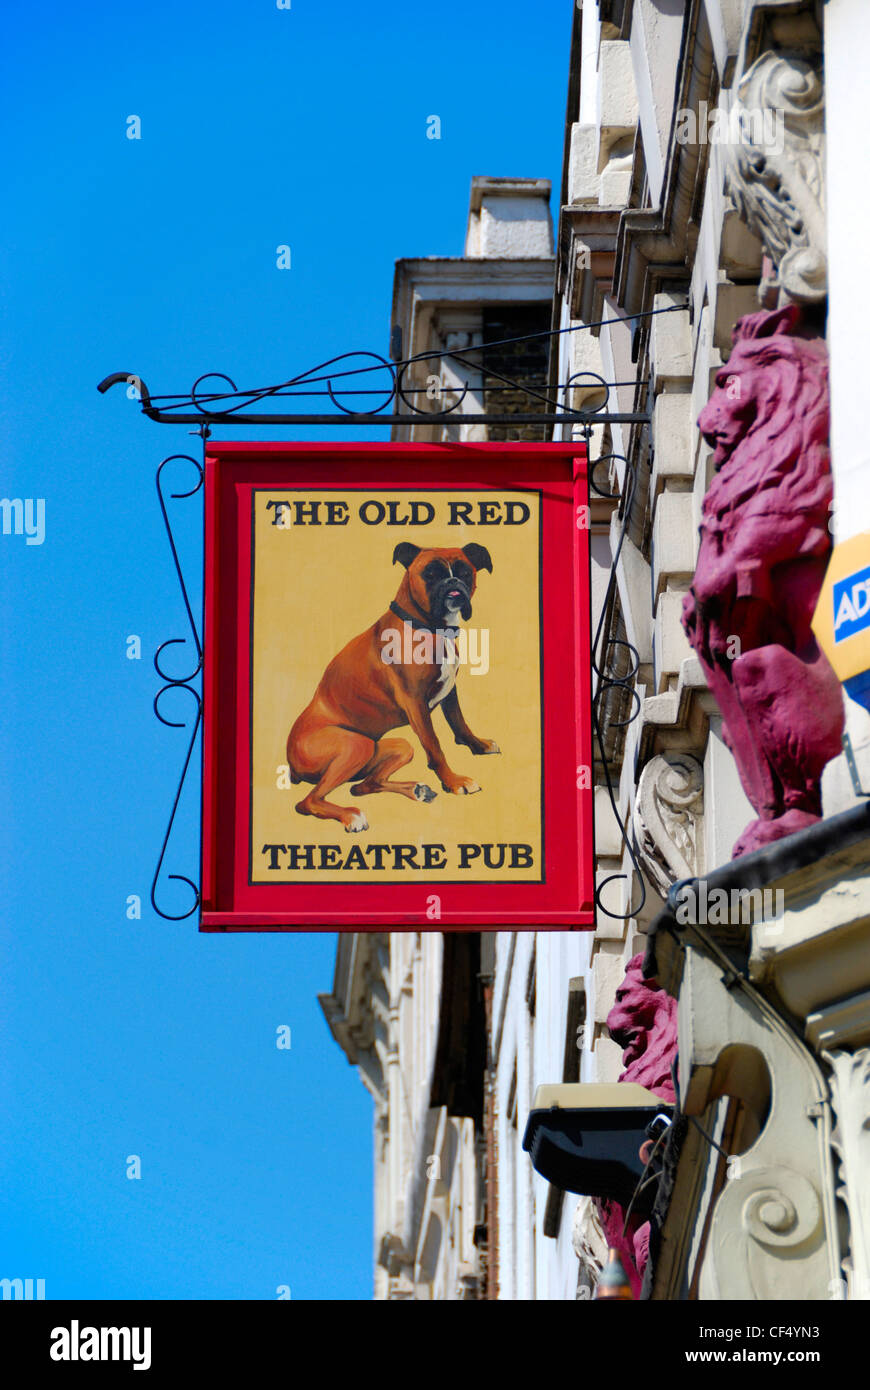 The Old Red Lion Theatre Pub sign projected from the front of the building in St John Street. - Stock Image